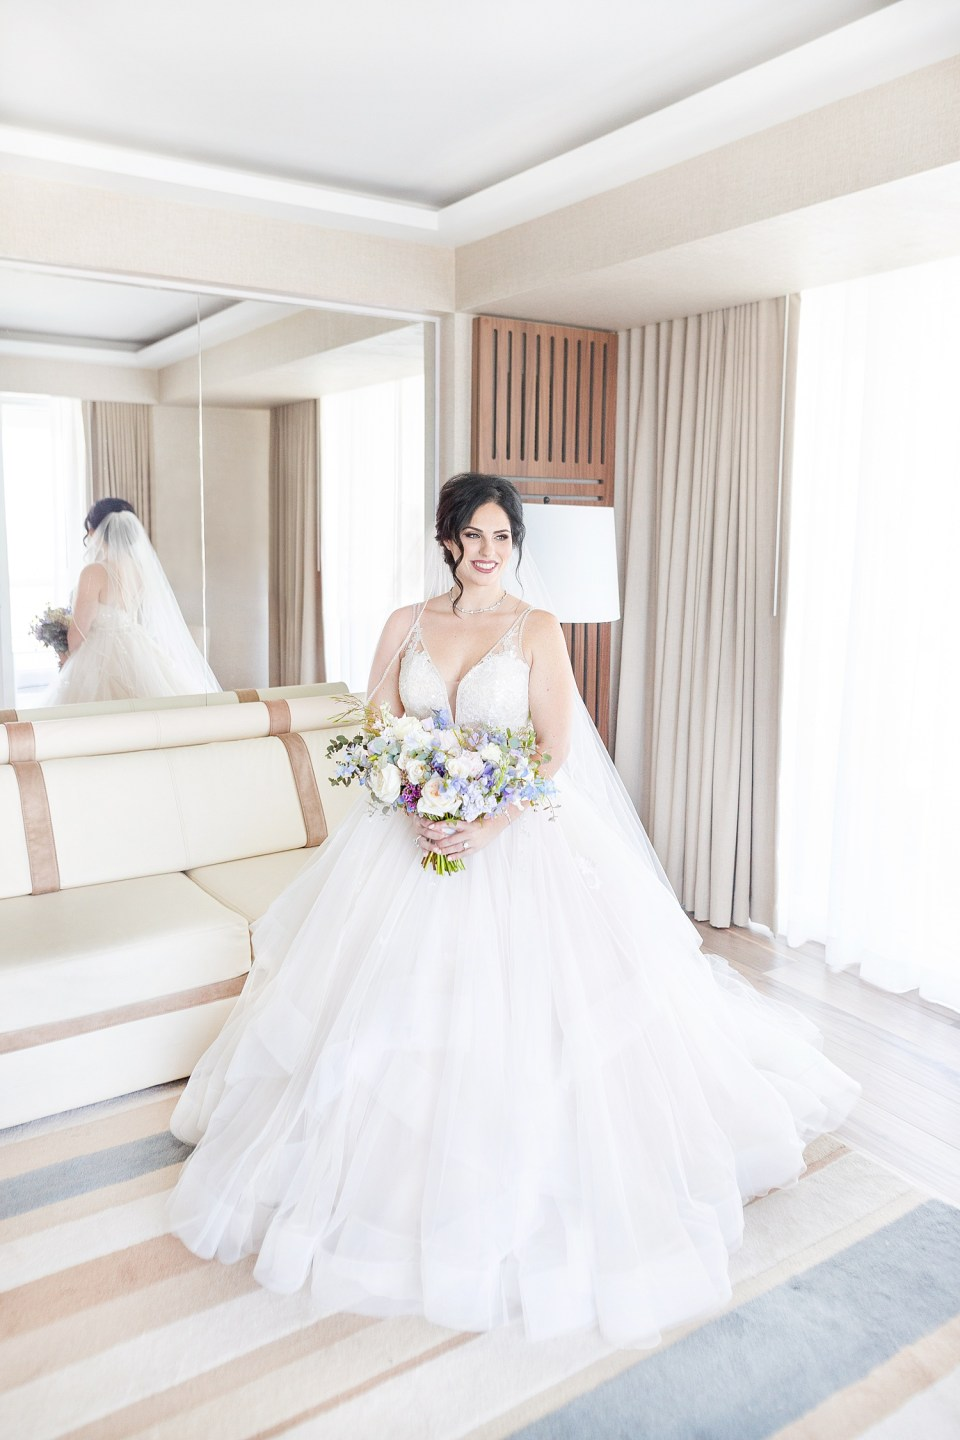 Bride in a white ballgown holding a bouquet in the bridal suite at her Conrad Fort Lauderdale Beach wedding